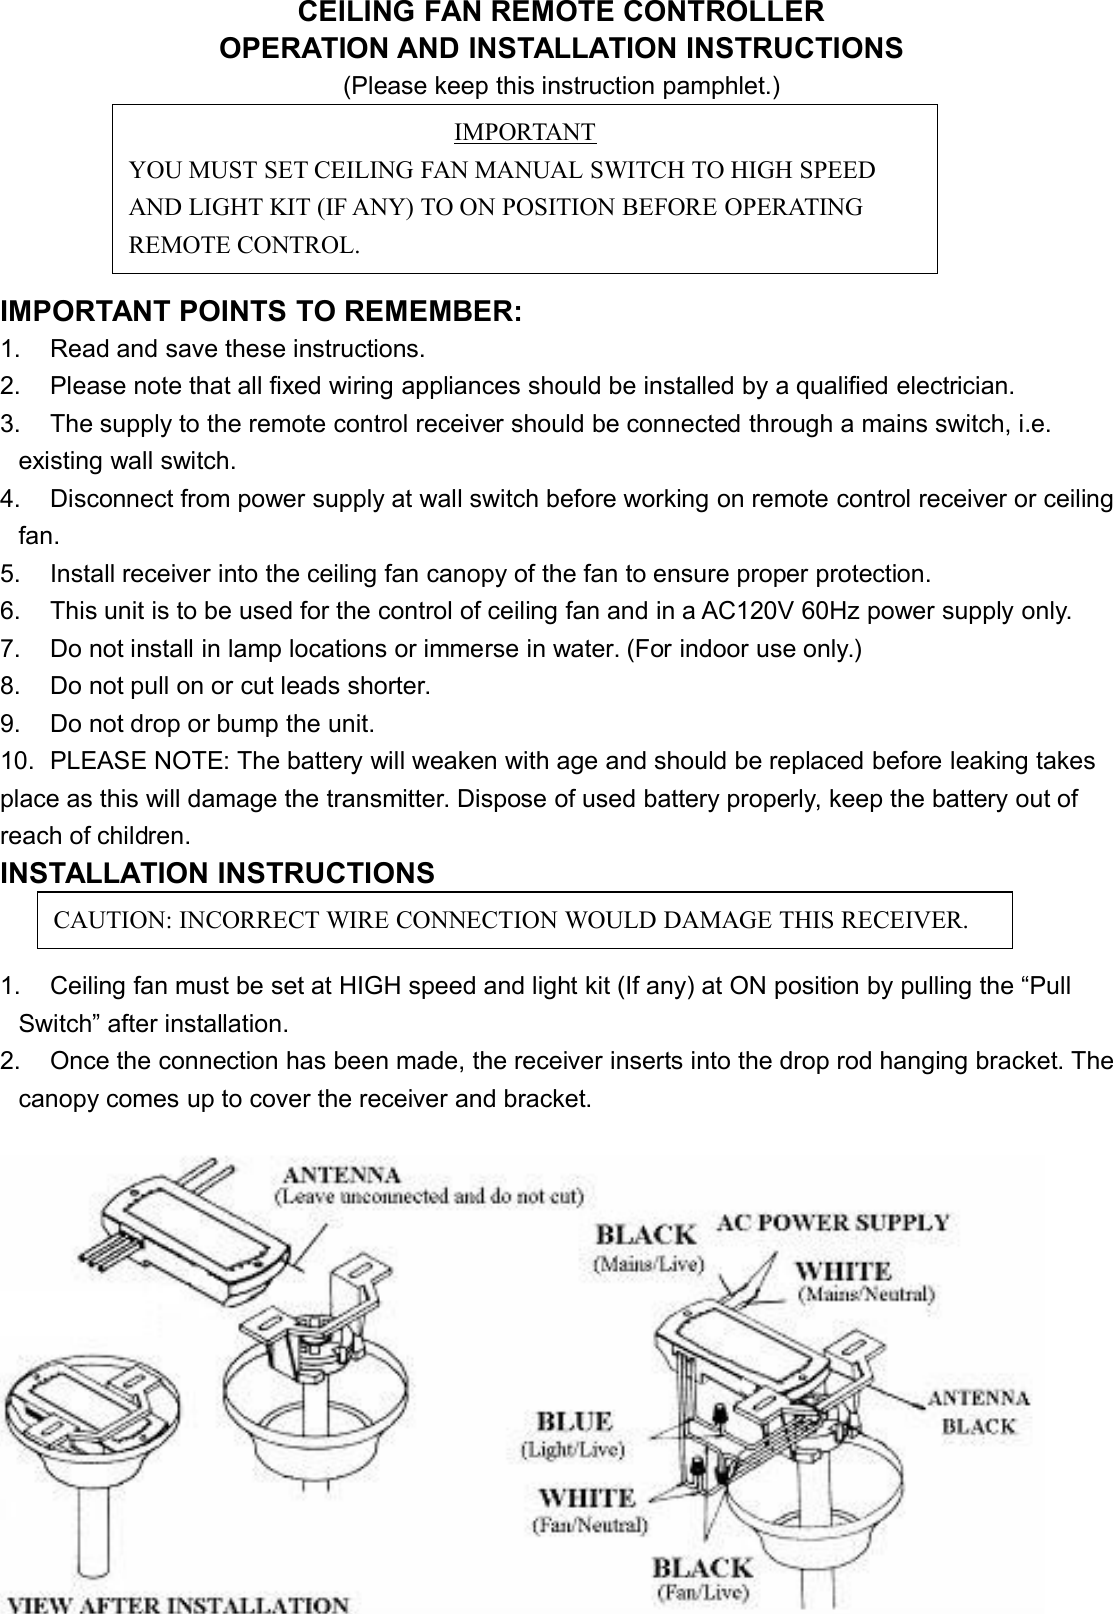 Westinghouse Ceiling Fan Wall Control 7787200 Manual Guide